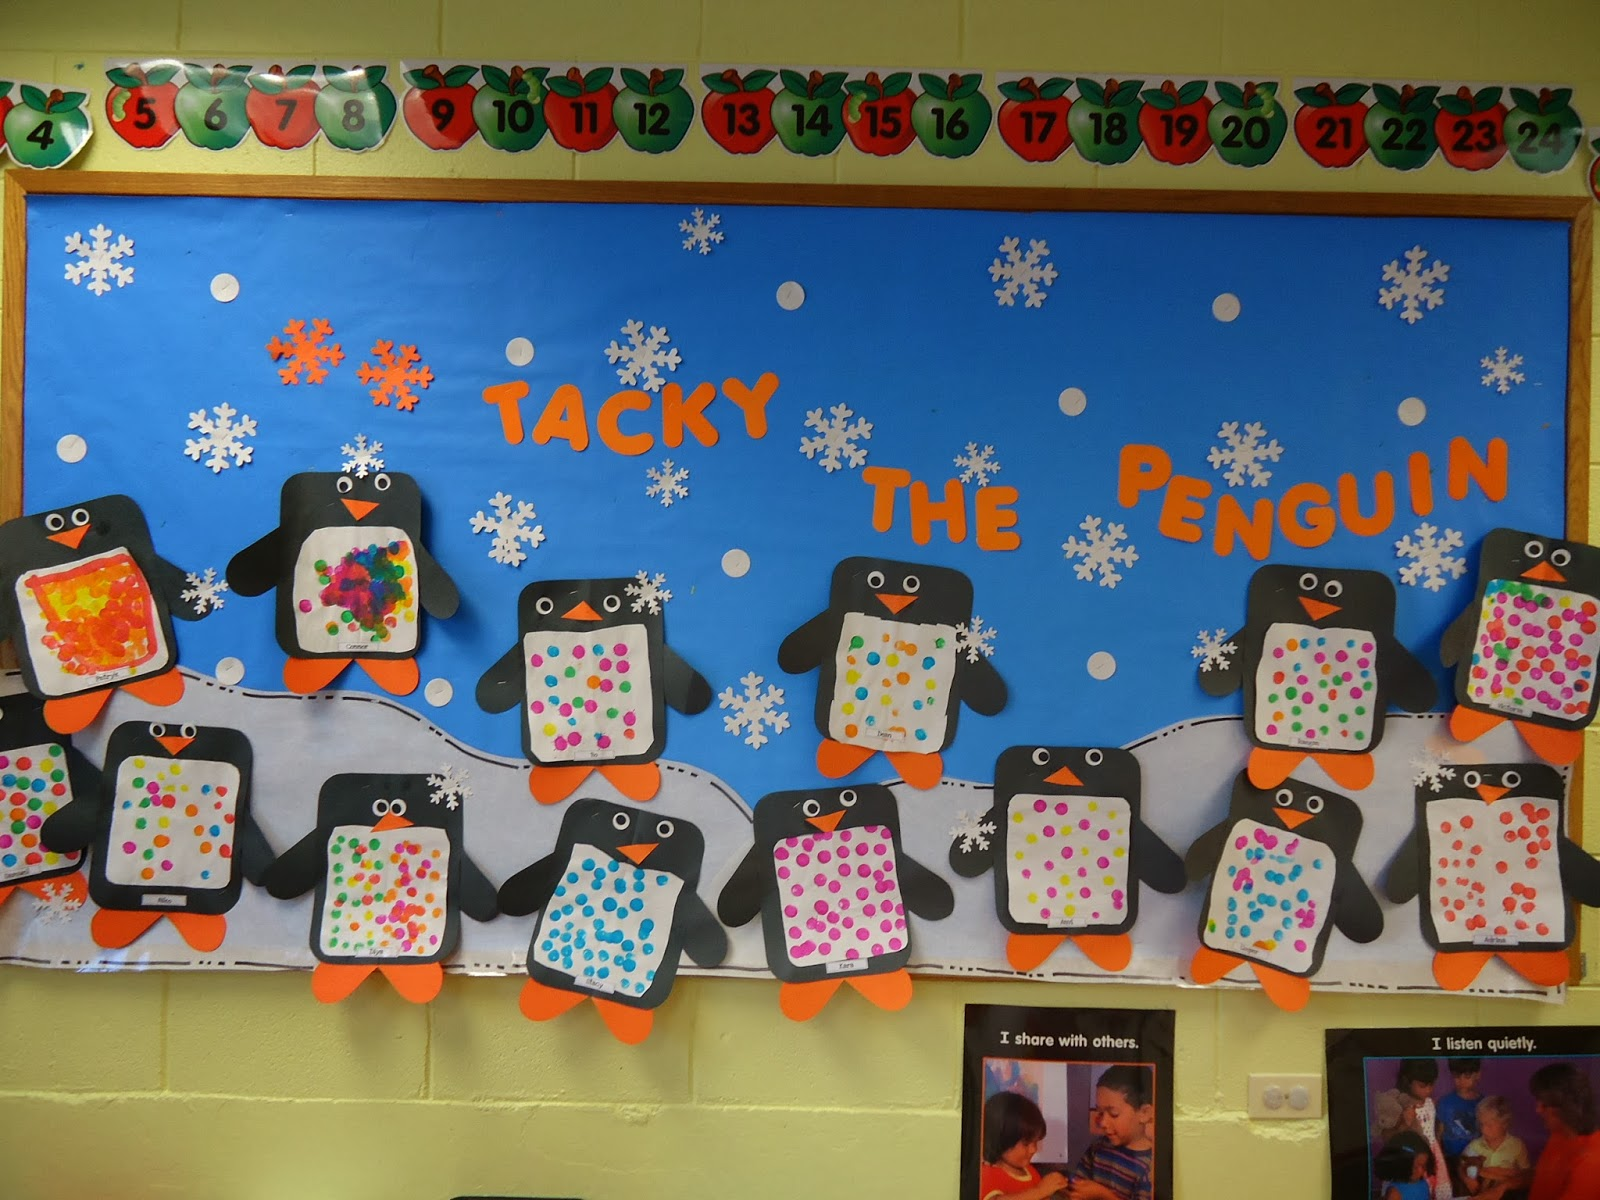 Trinity preschool mount prospect tacky the penguin bulletin board